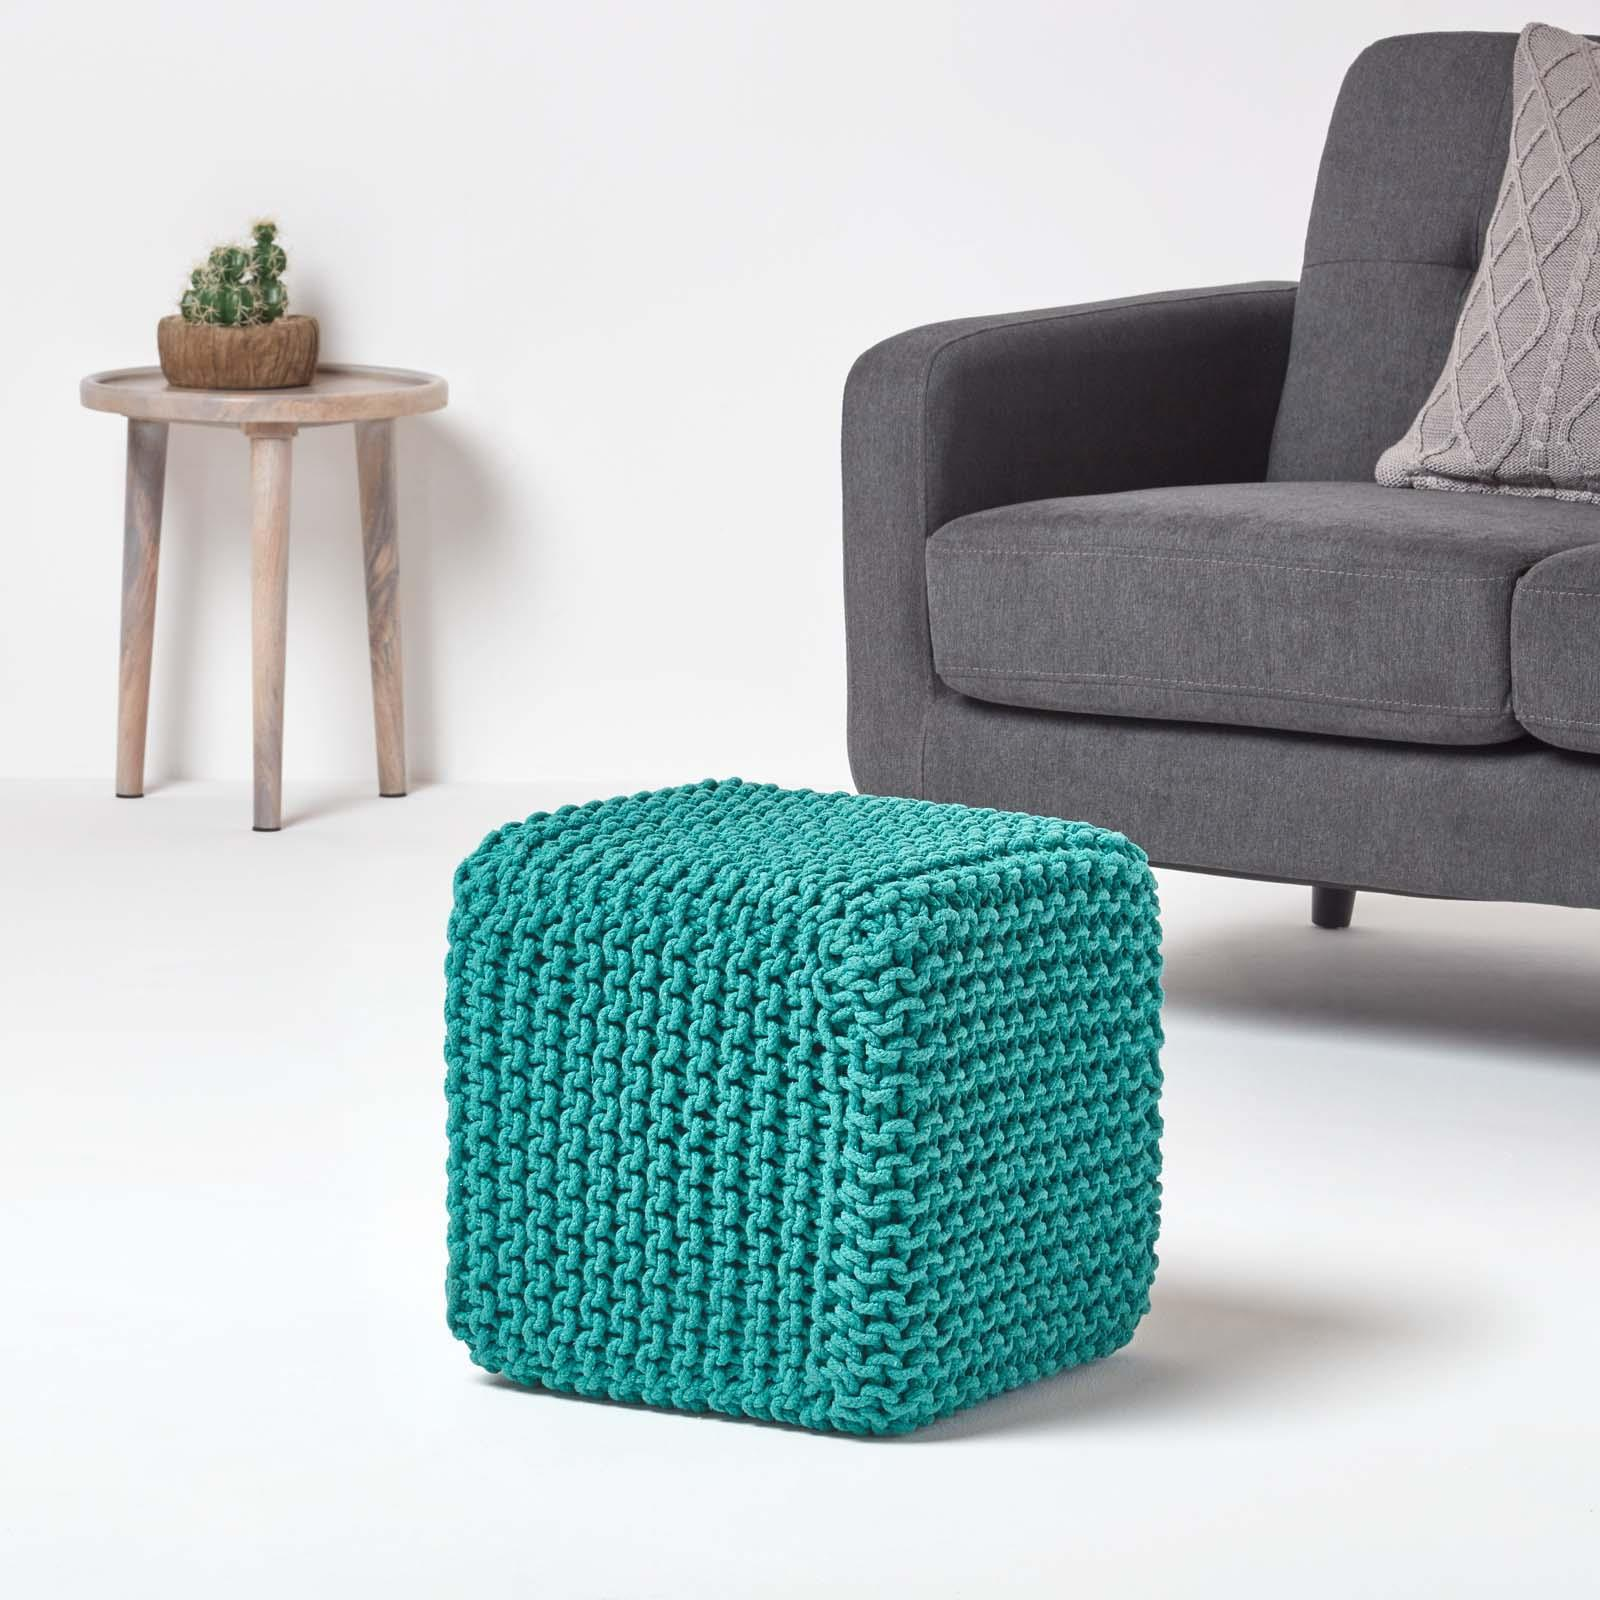 Hand-Knitted-100-Cotton-Pouffes-Round-Sphere-Or-Cube-Square-Chunky-Footstools thumbnail 199